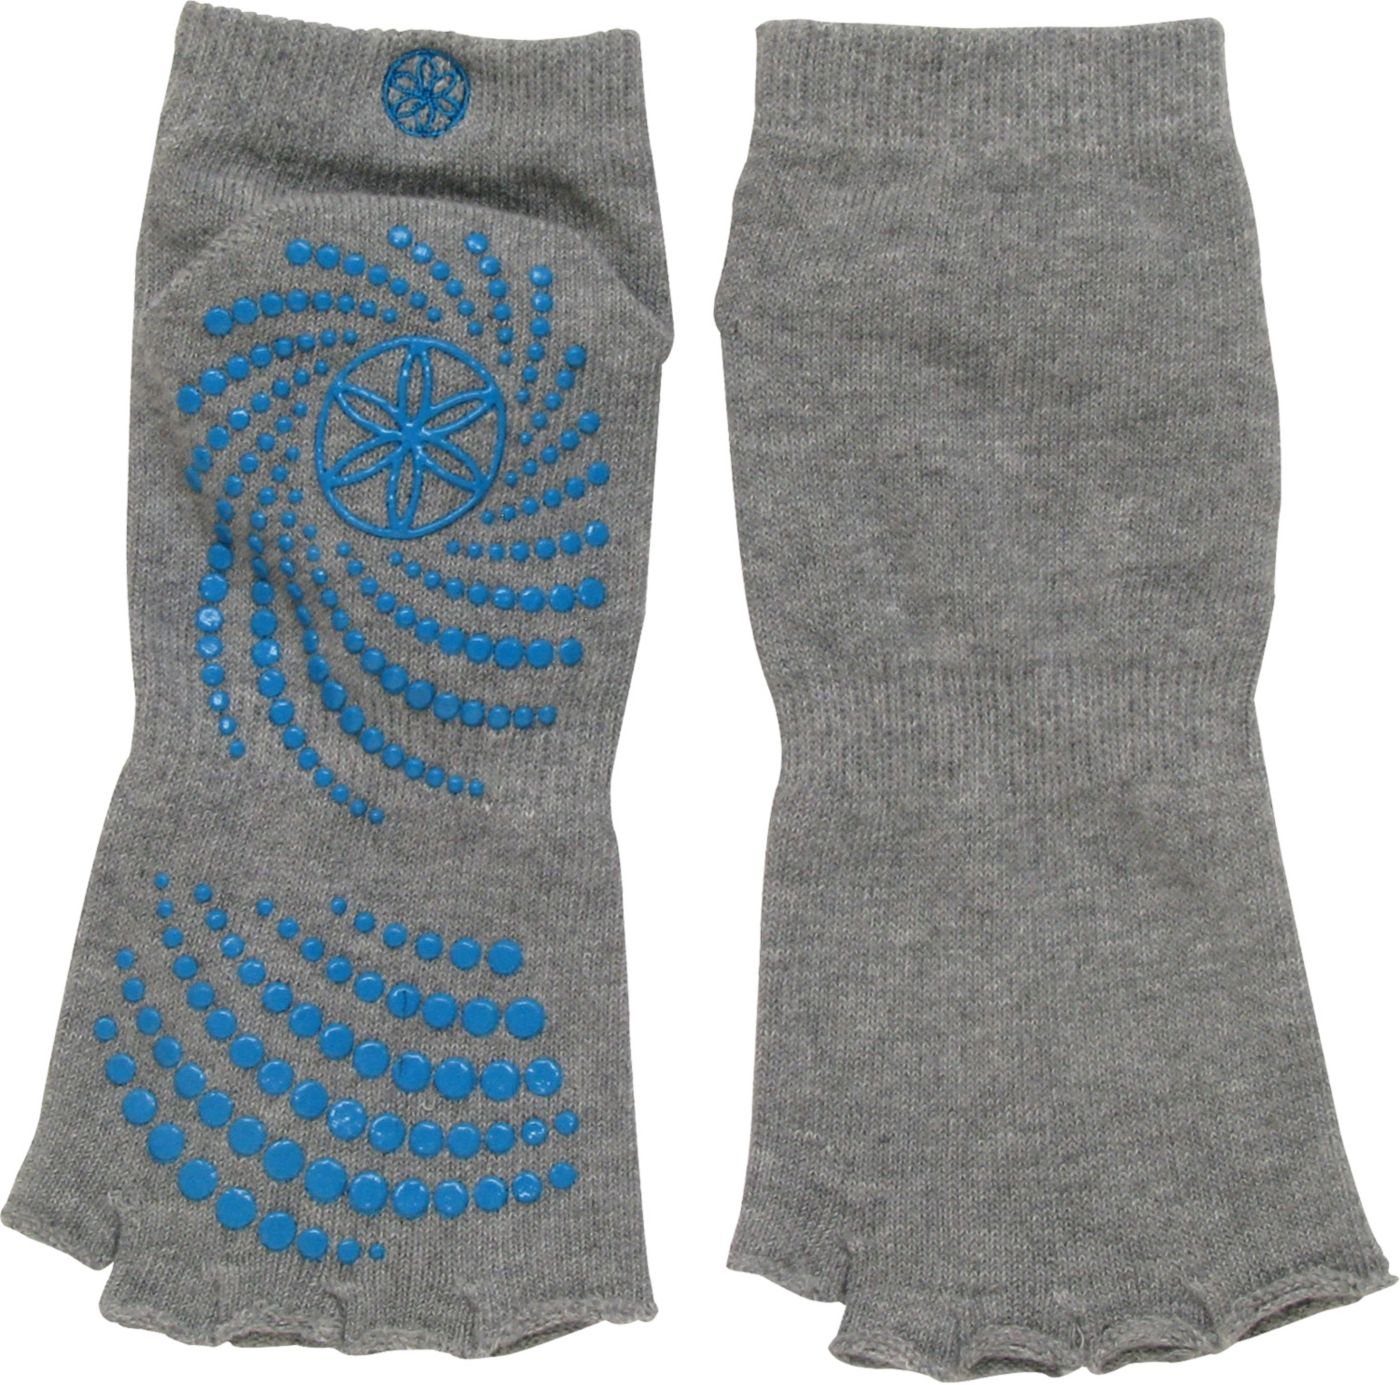 Gaiam Toeless All-Grip No-Slip Yoga Socks